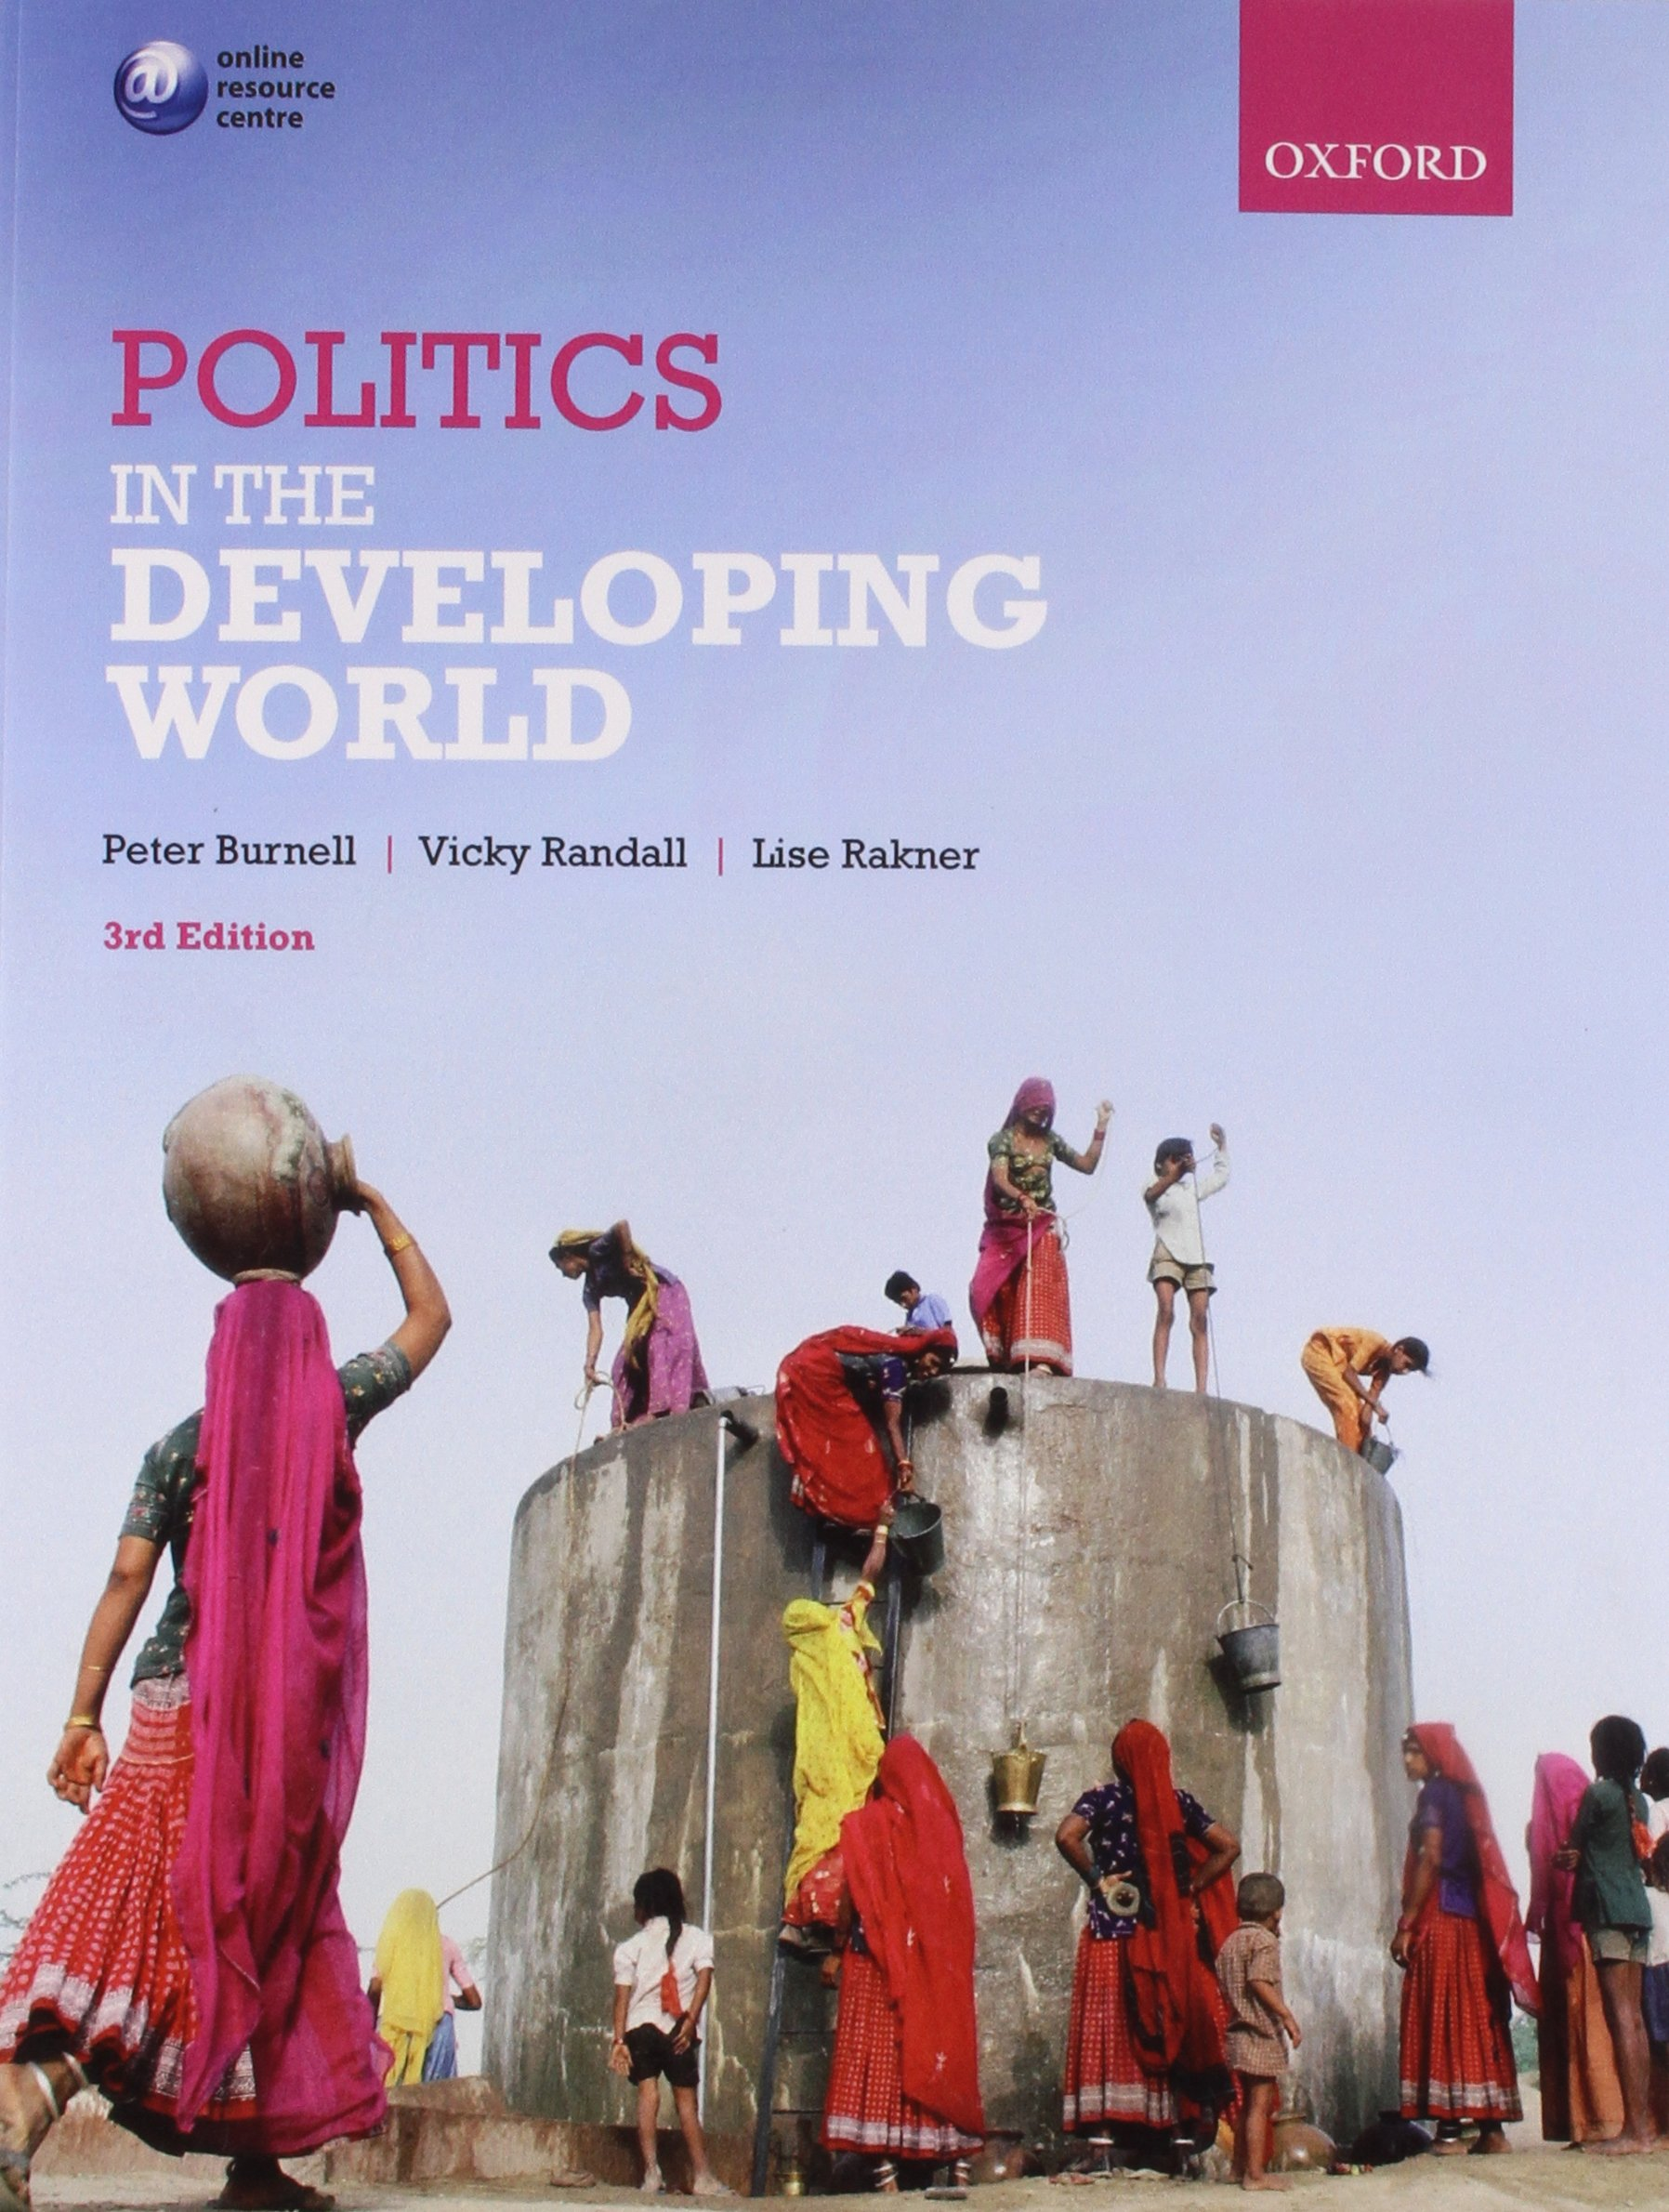 Politics in the Developing World by Oxford University Press